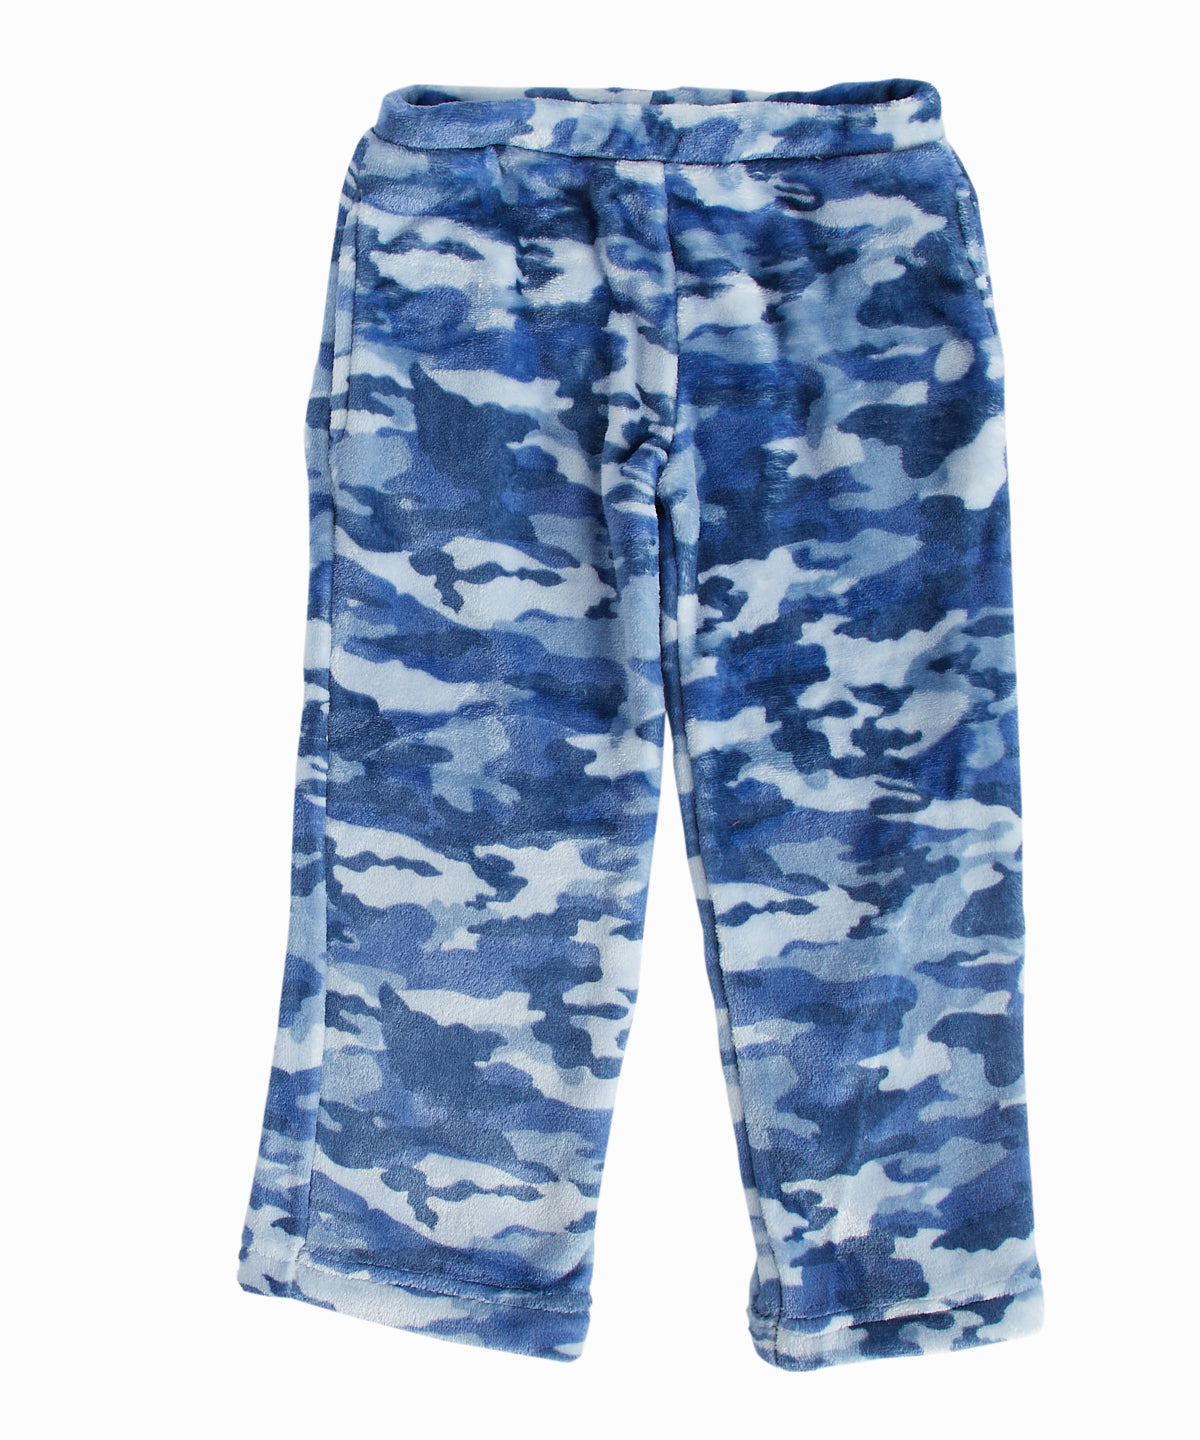 Navy Camo Pajama Pants